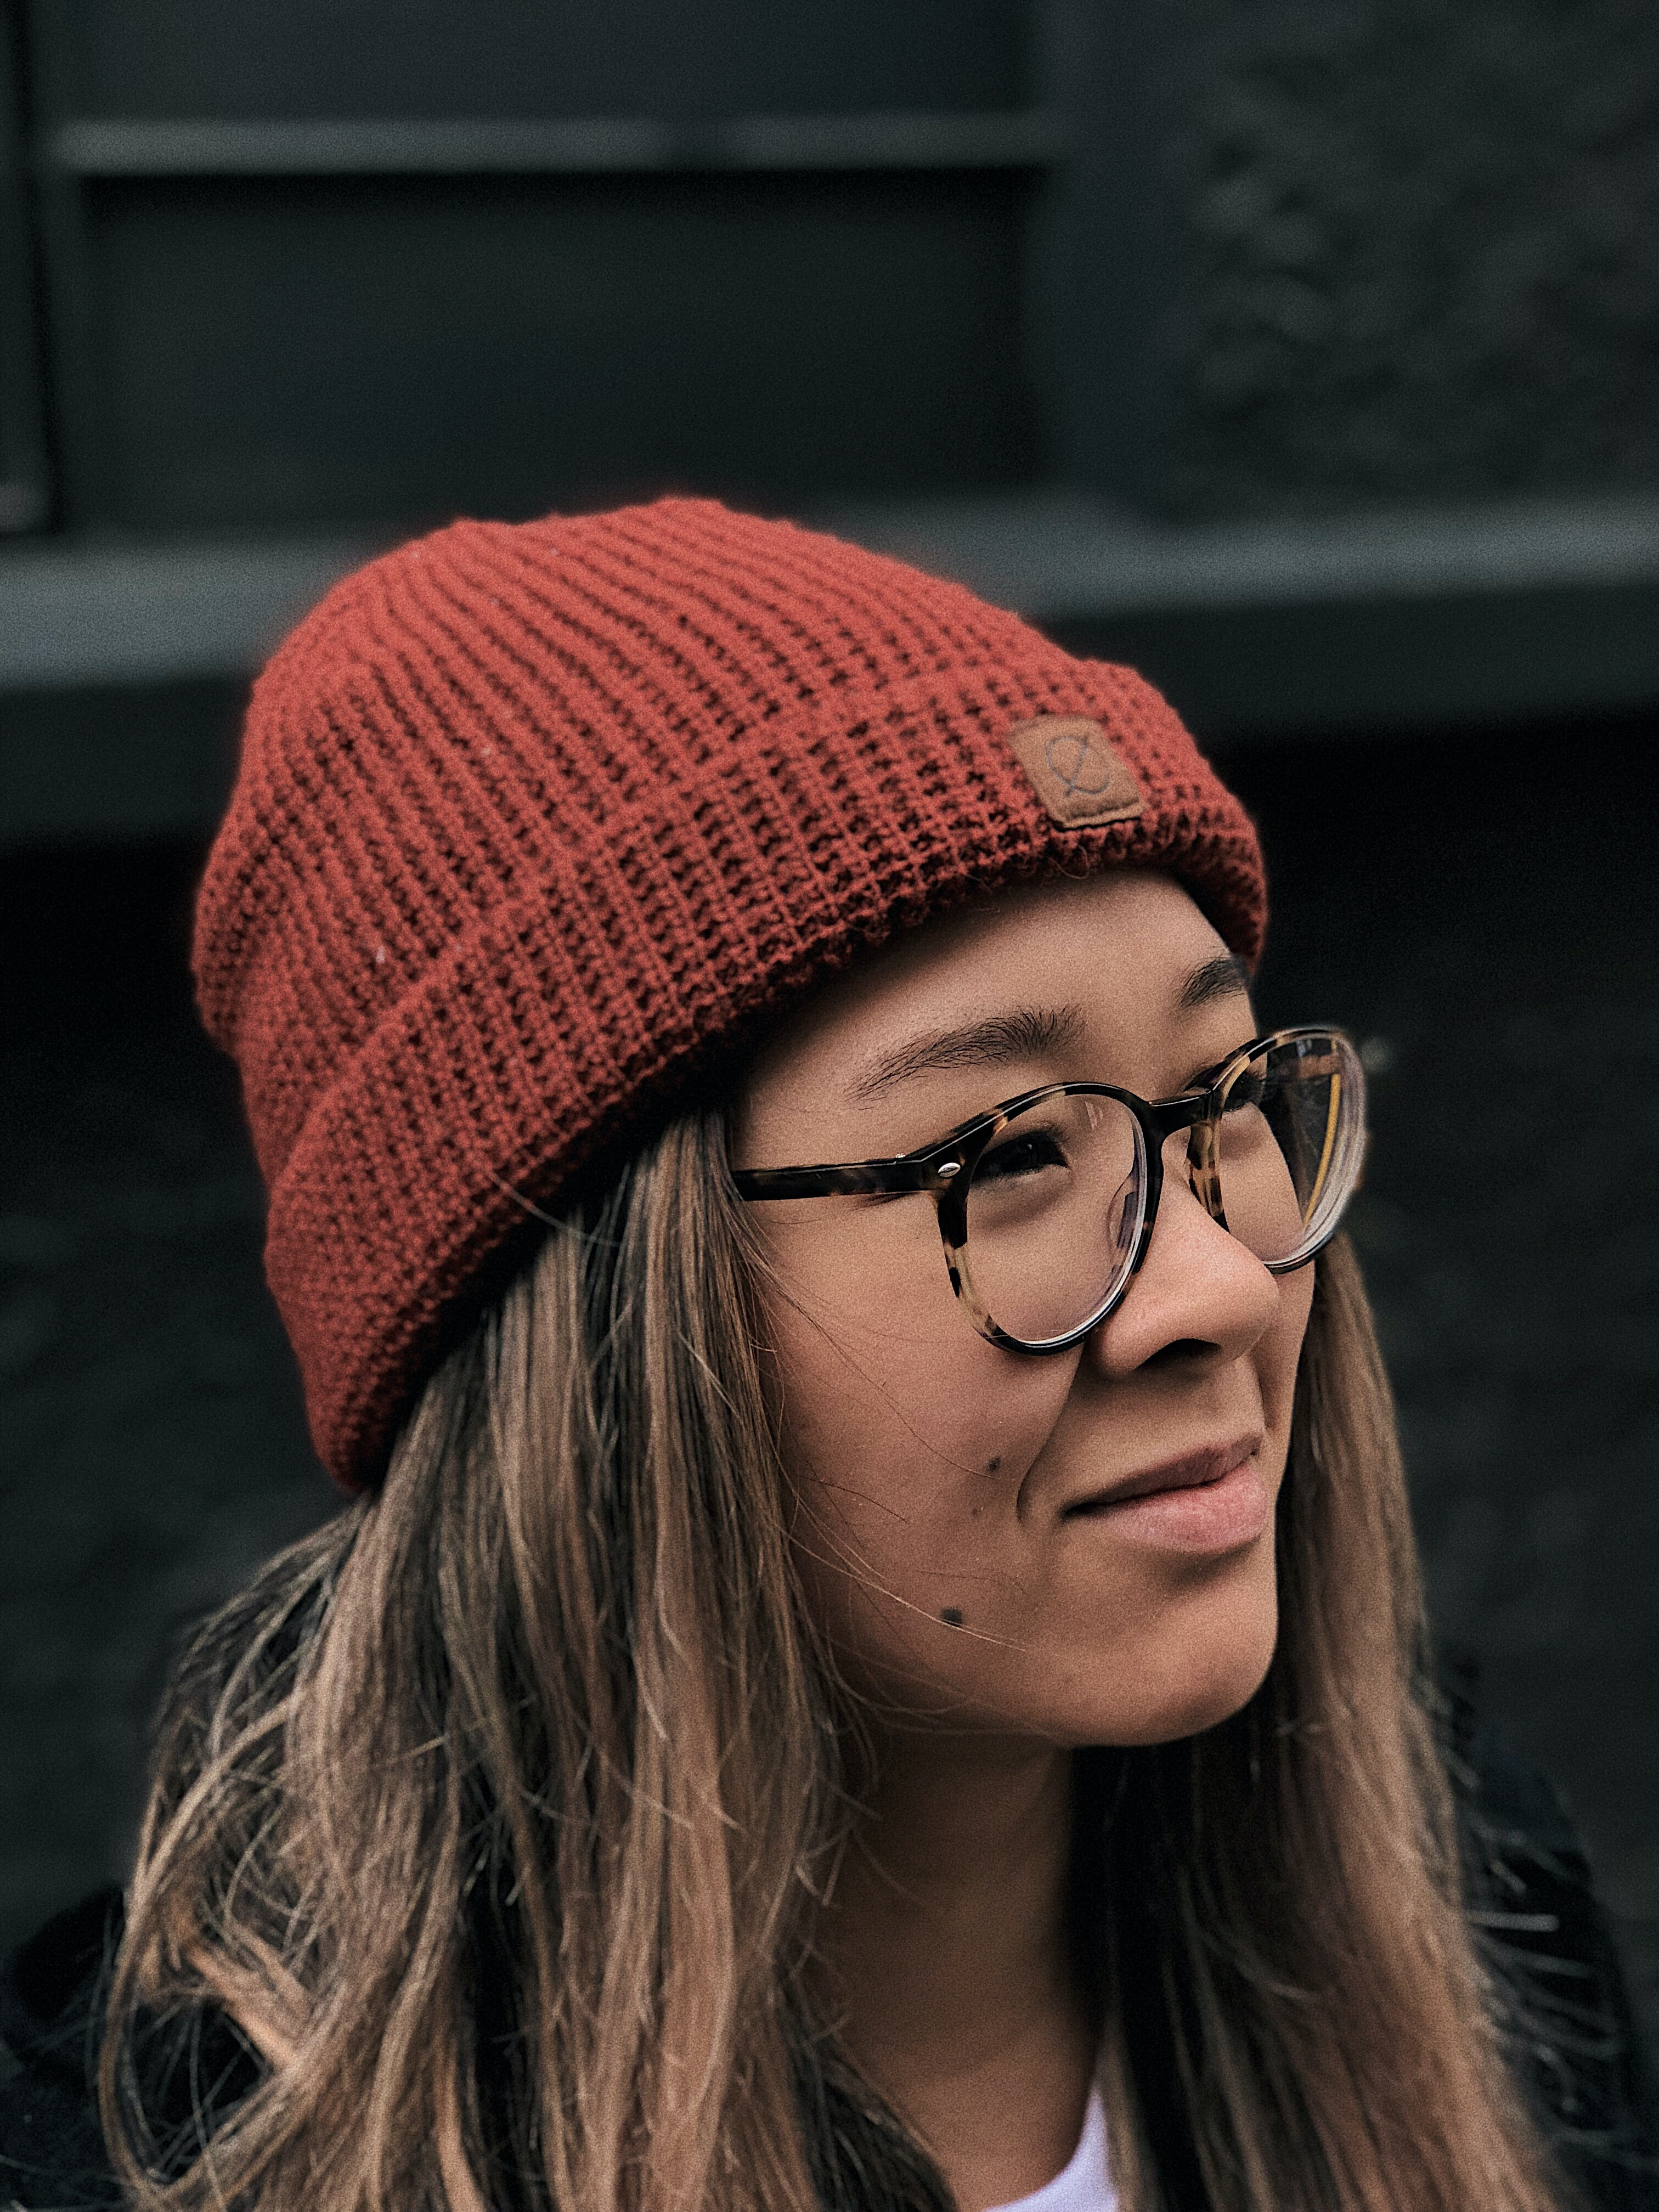 woman wearing knit cap and eyeglasses